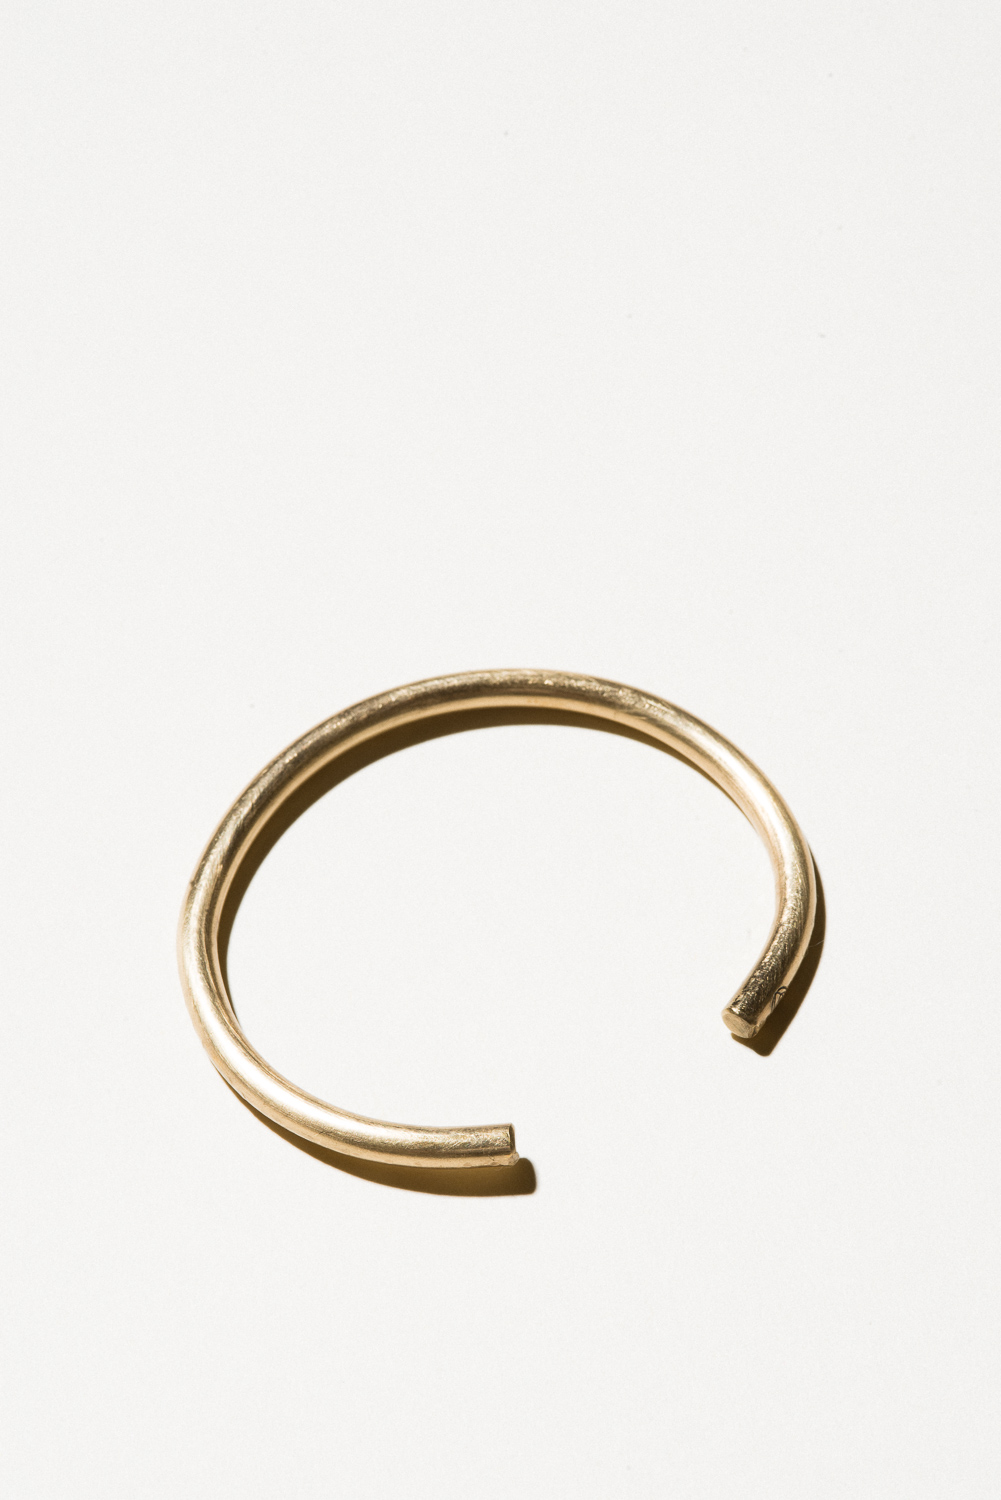 Brass Wire Cuff - 5mm wideJewelers Brass with Lacquer FinishHand Smithed$50